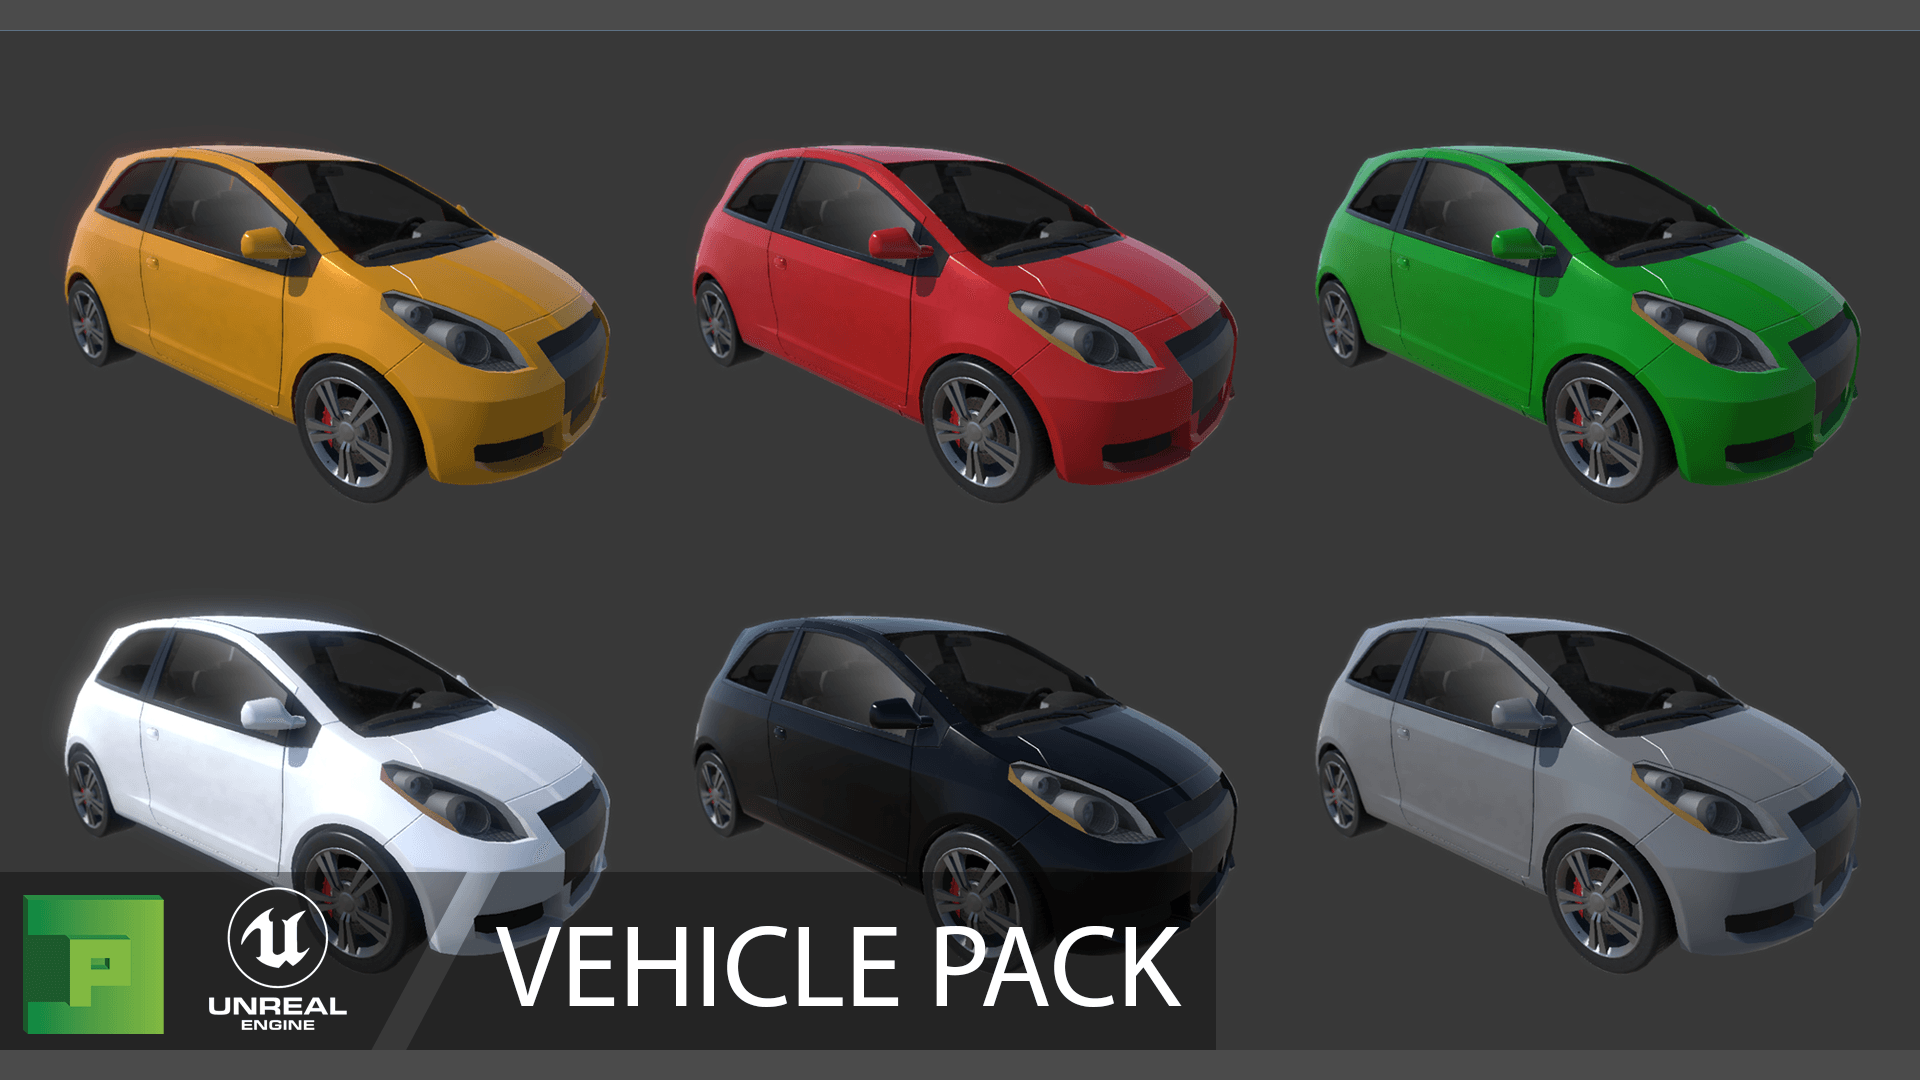 VehiclePack_13